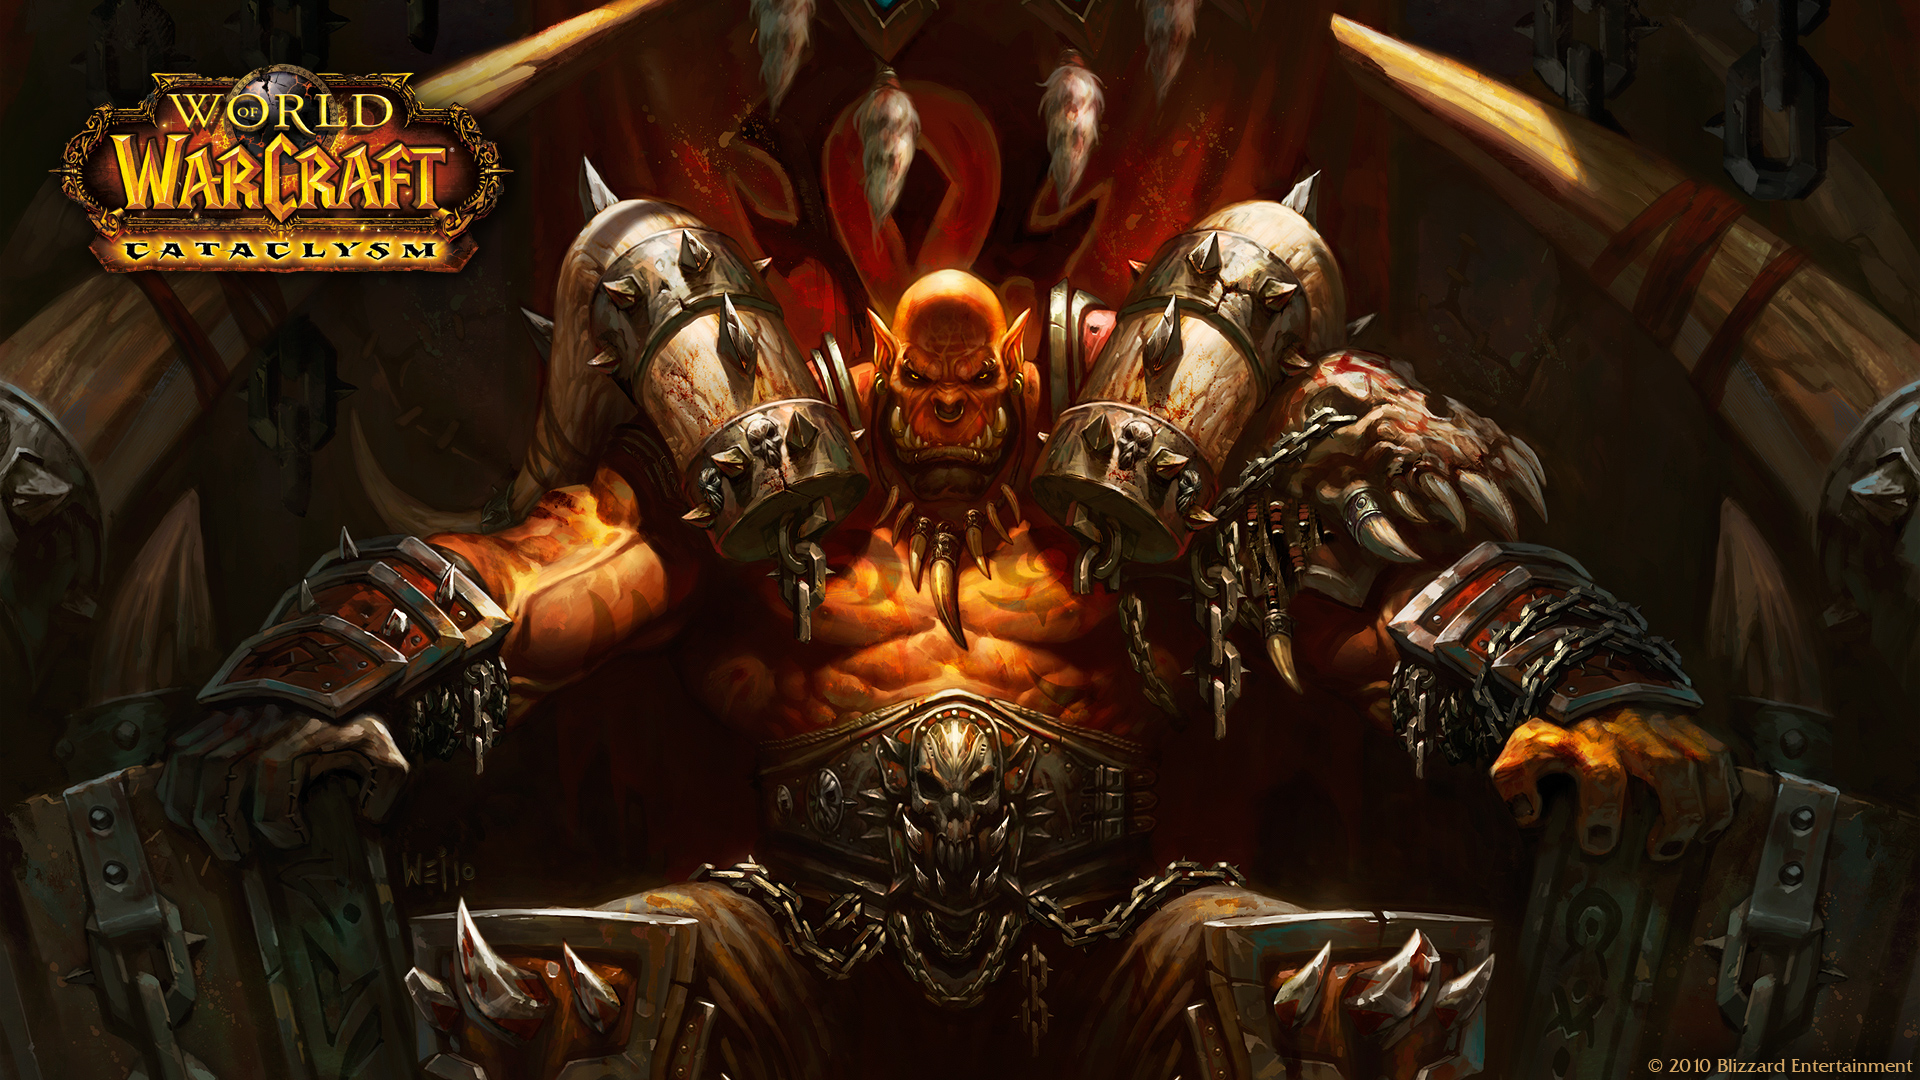 HD Wallpapers World of Warcraft III Cataclysm 1920x1080